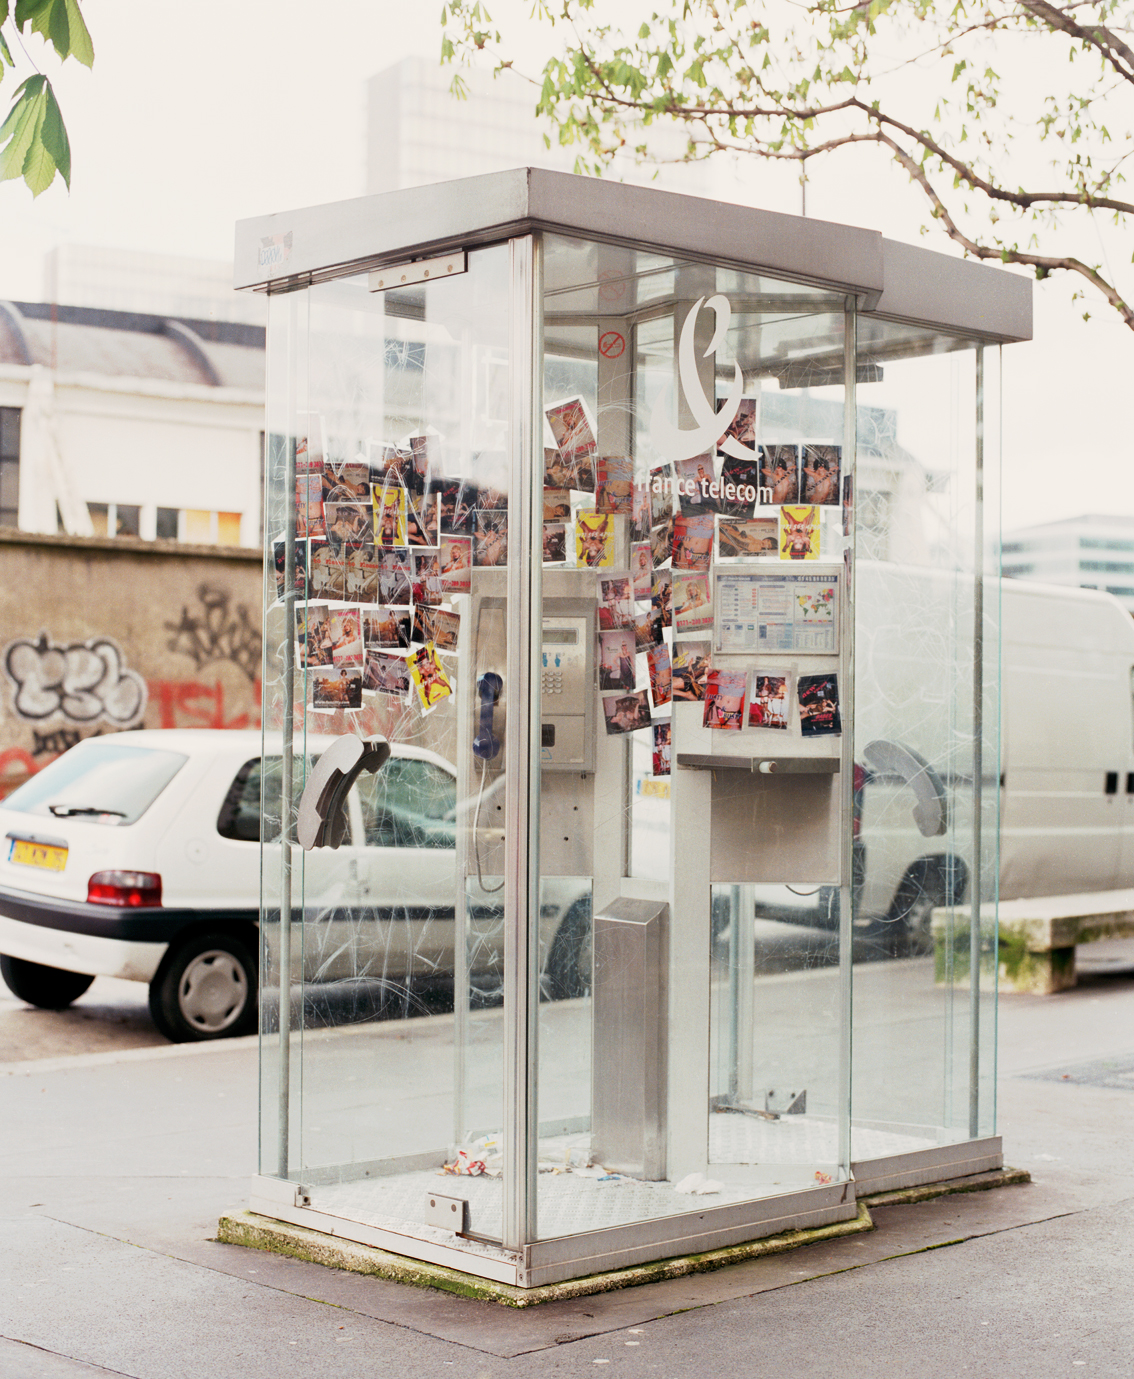 0171-girlz  , installation view in public telephone booth, 75013 Paris, 2000